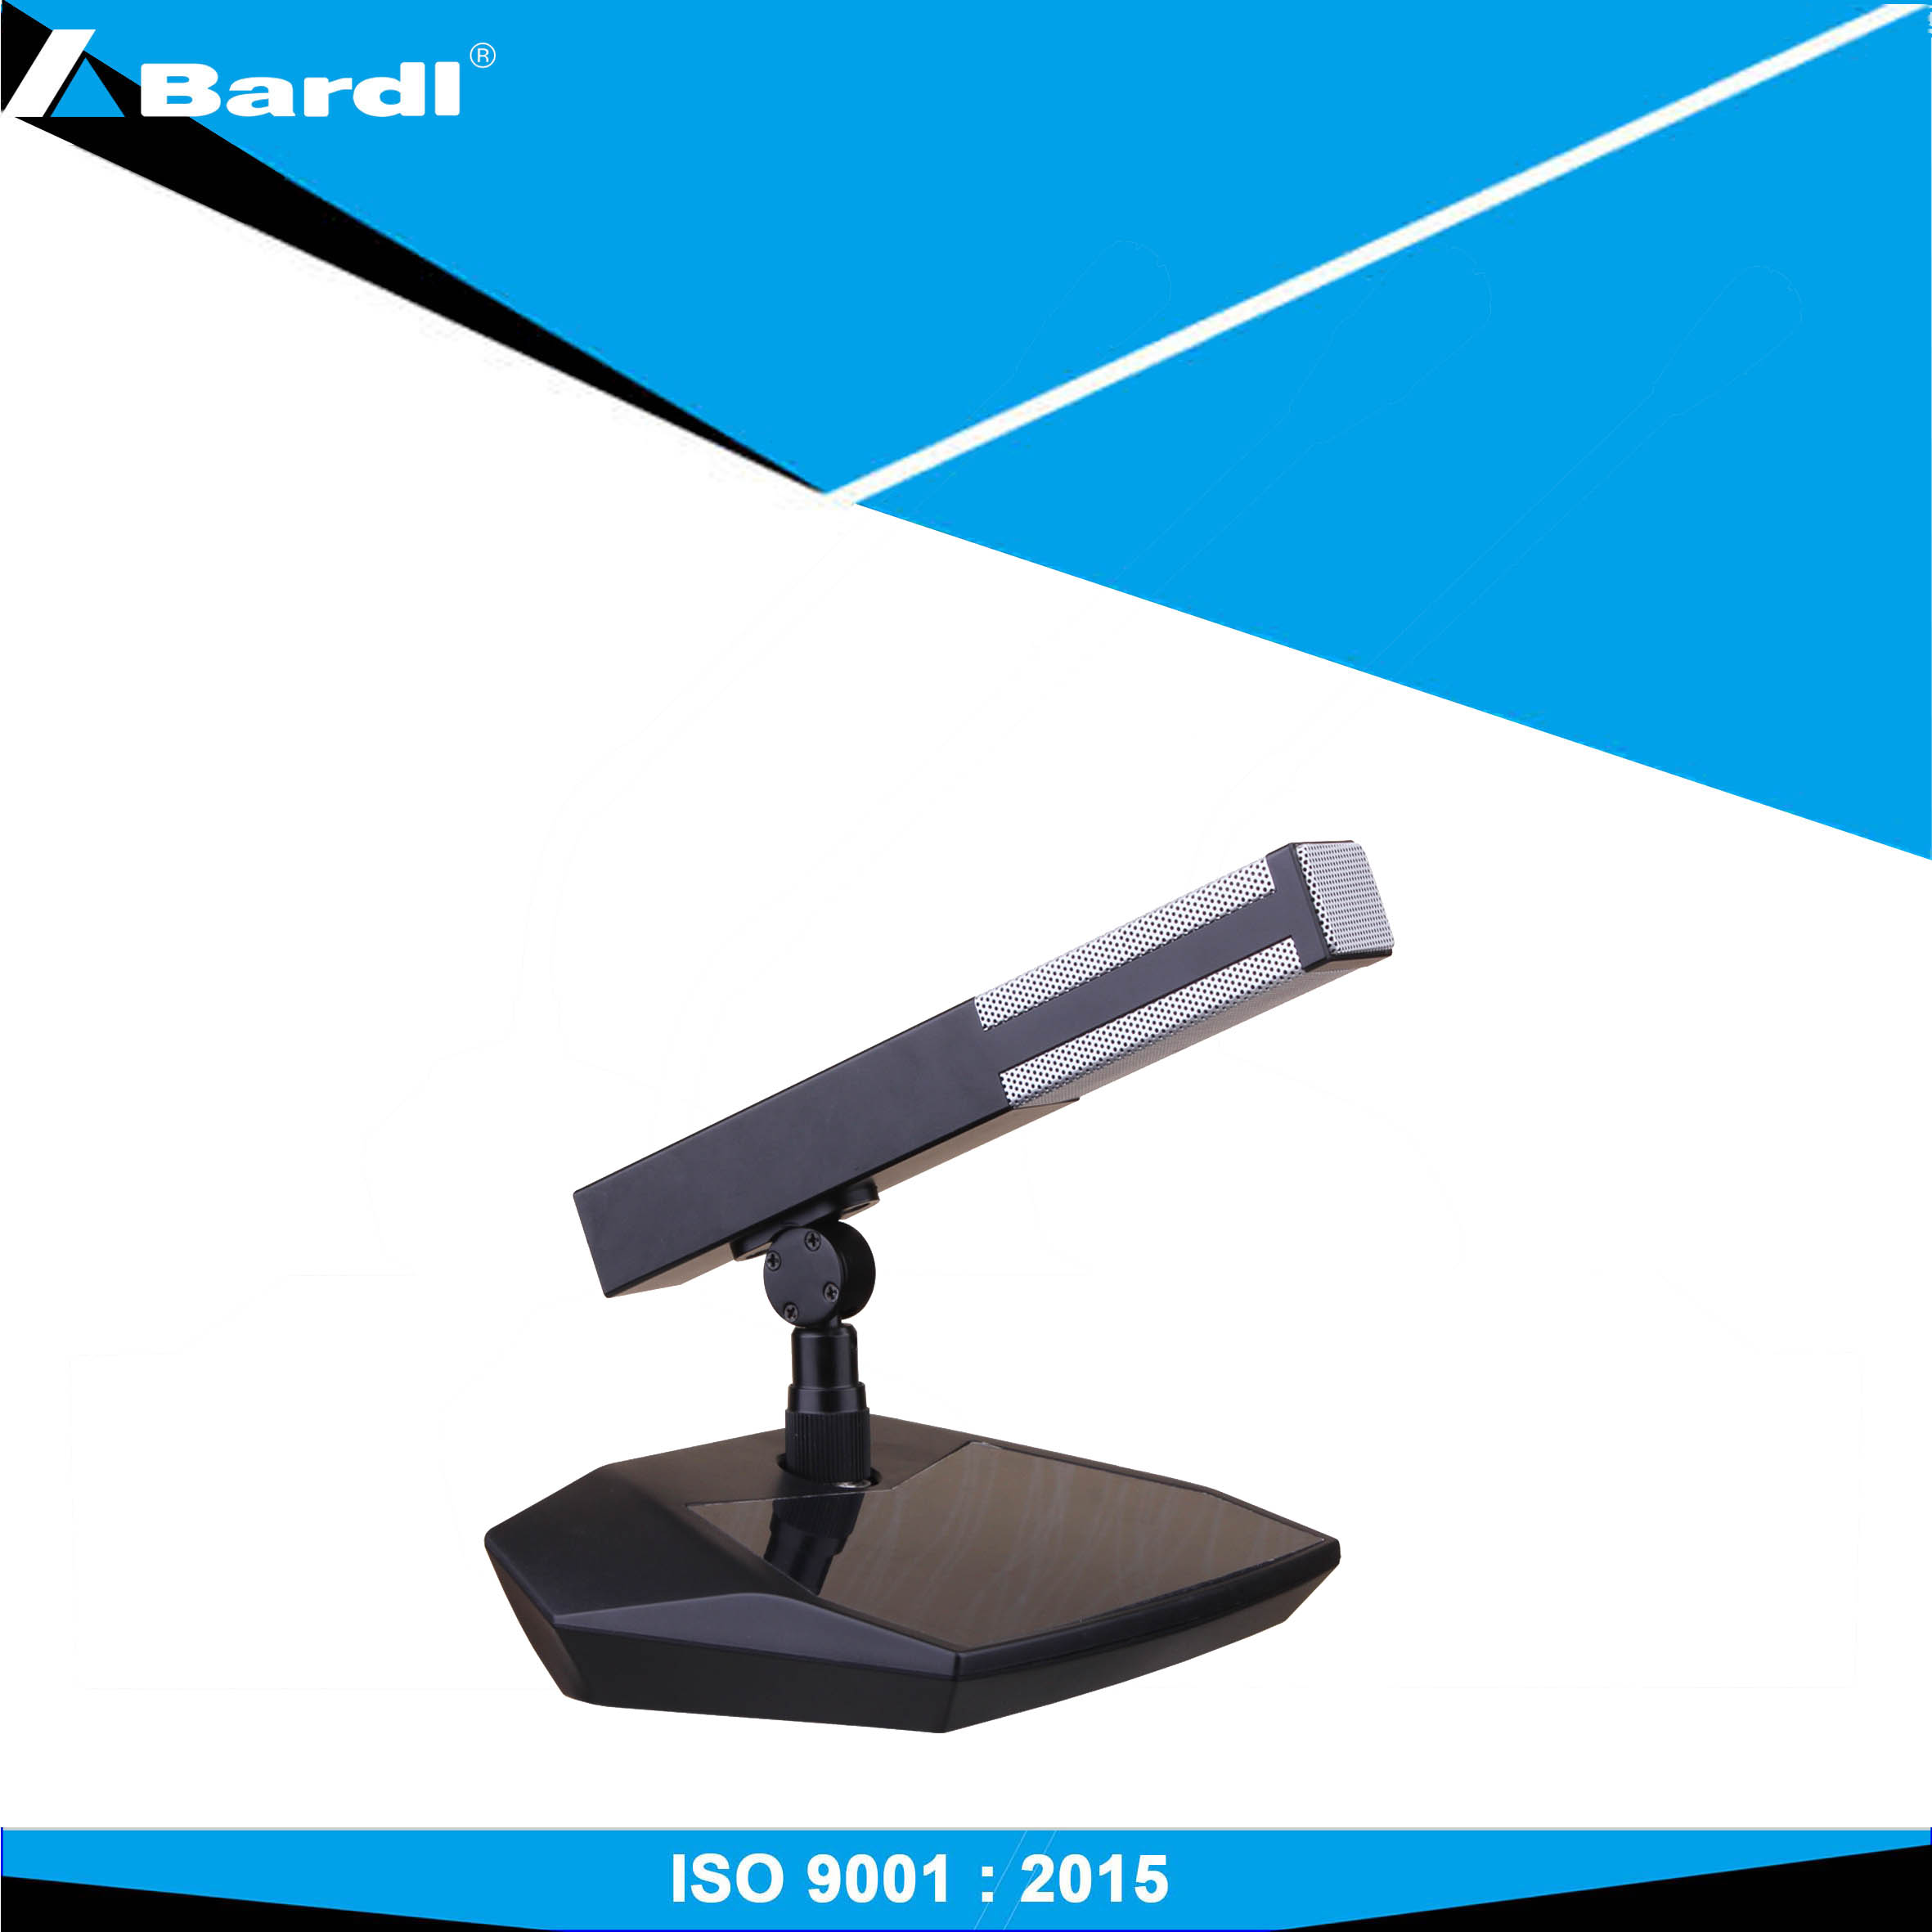 Bardl Digital conference system SC-3303